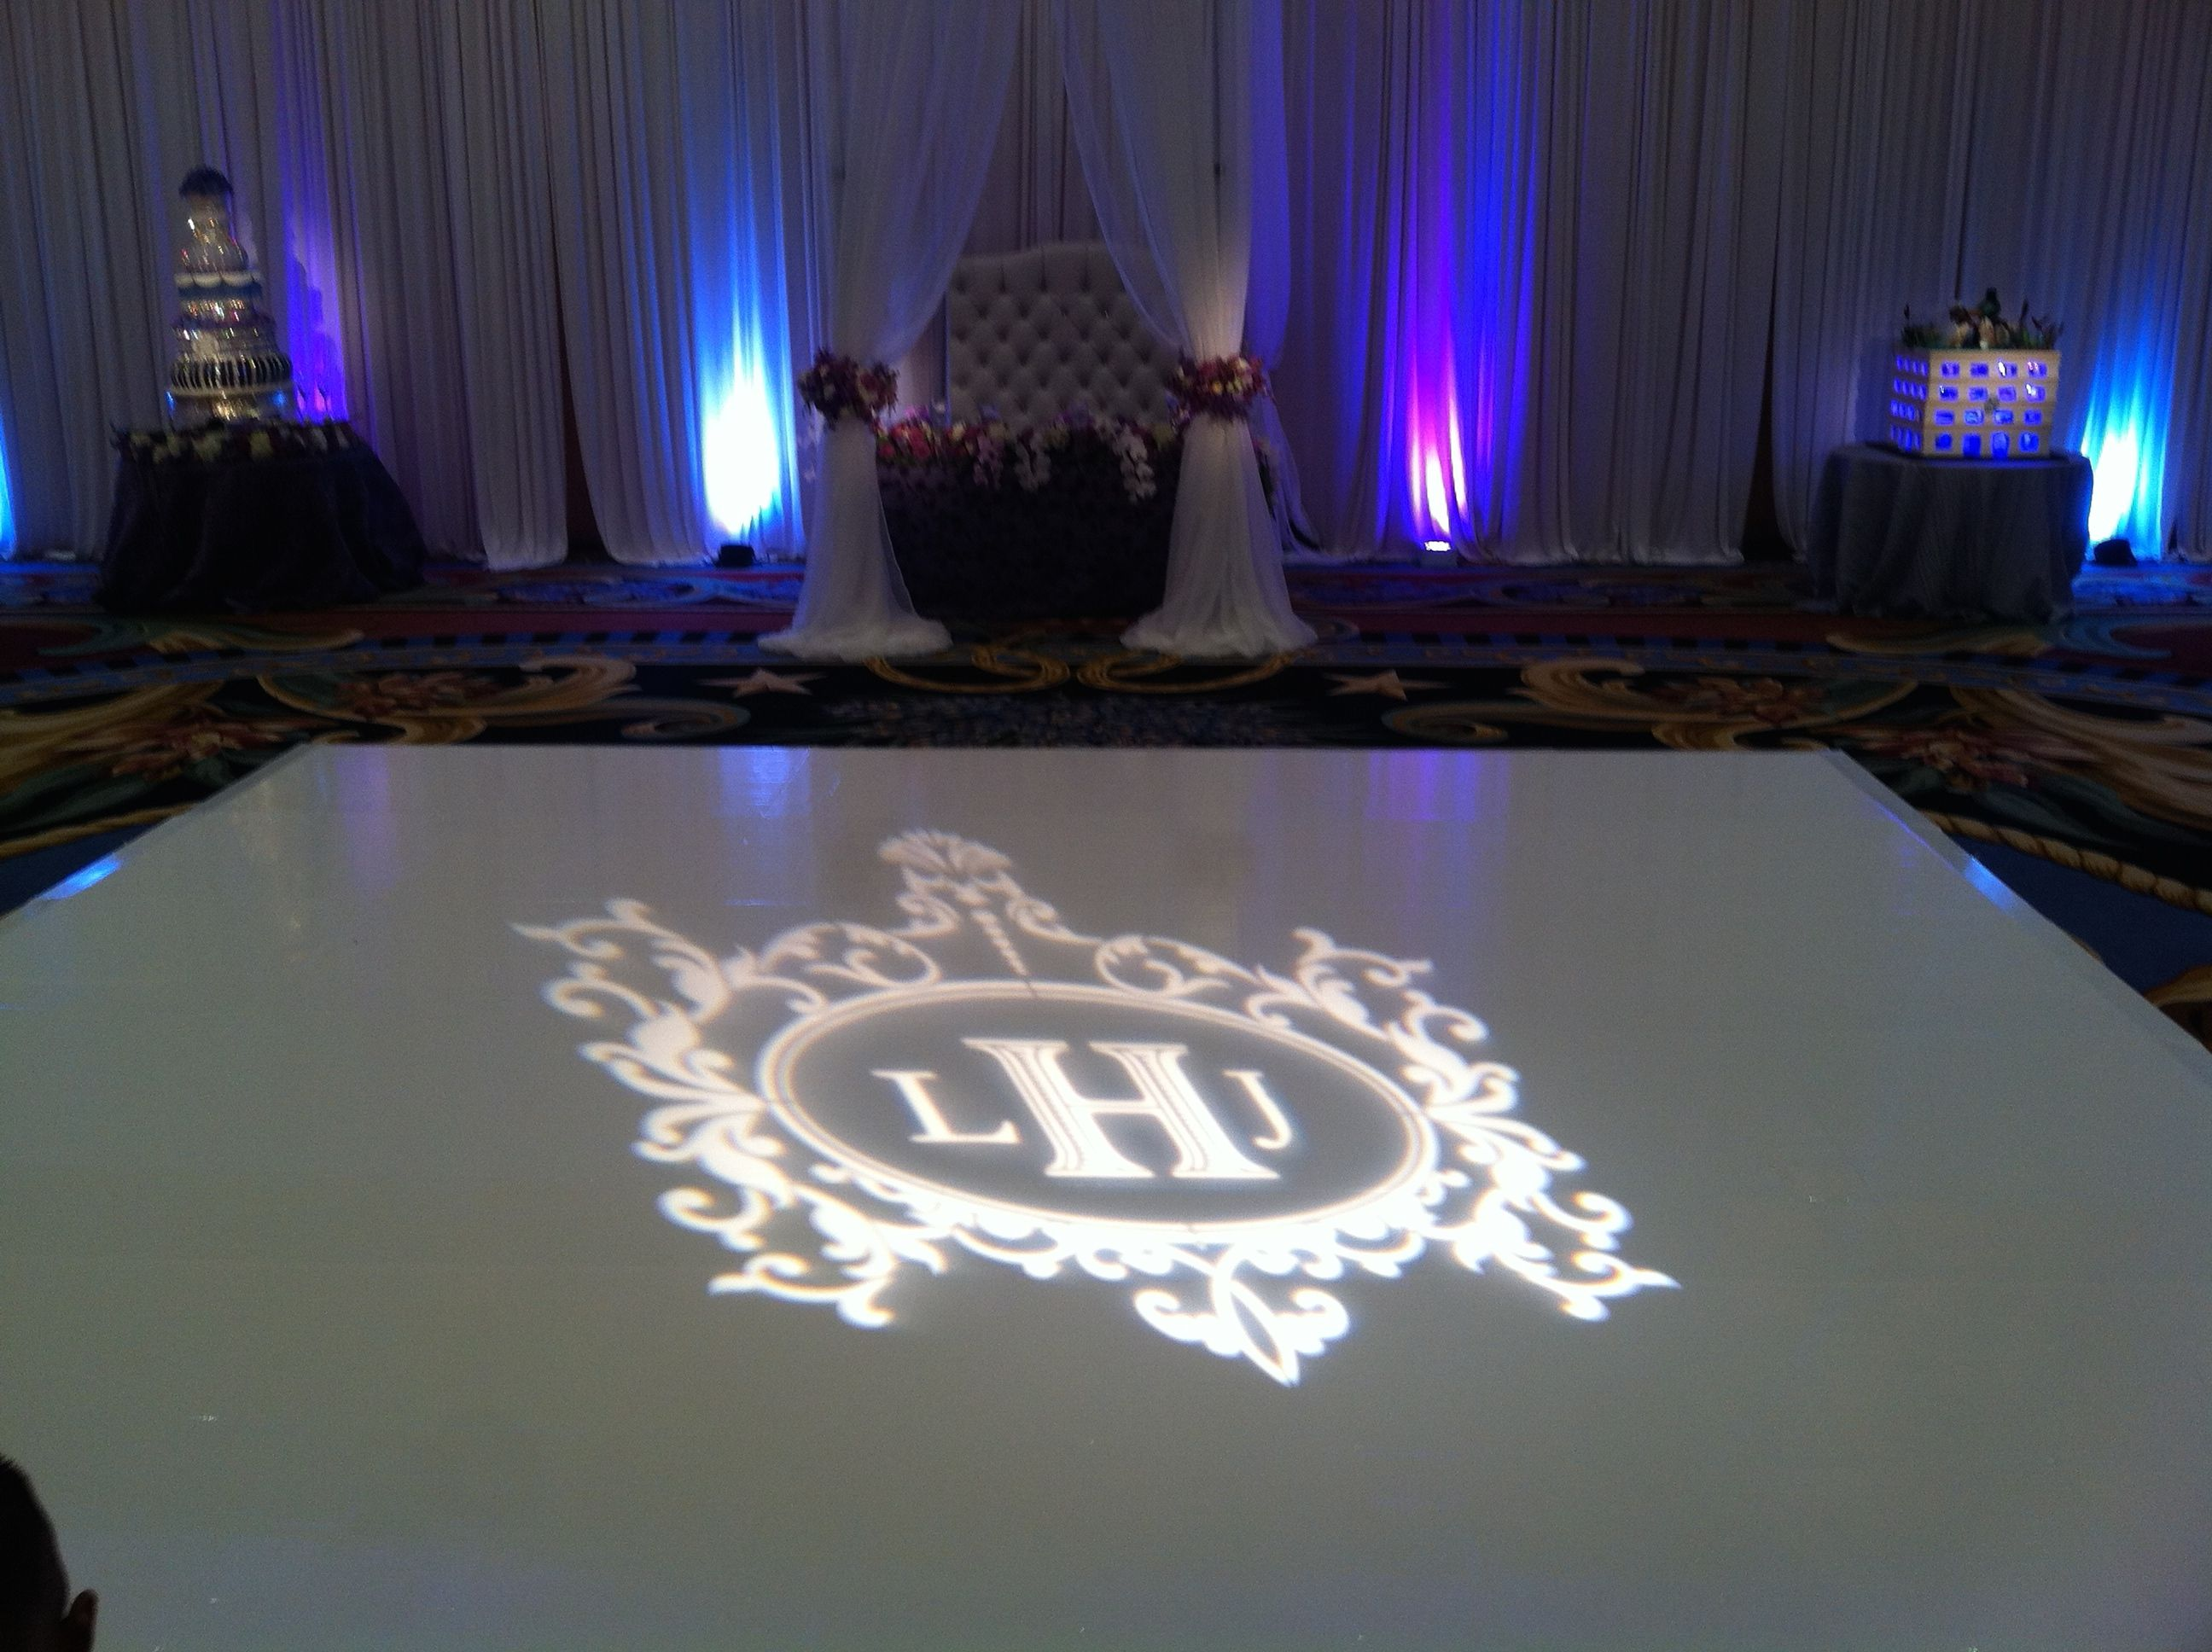 Gaylord Hotel Grapevine Texas Wedding Gobo Projection